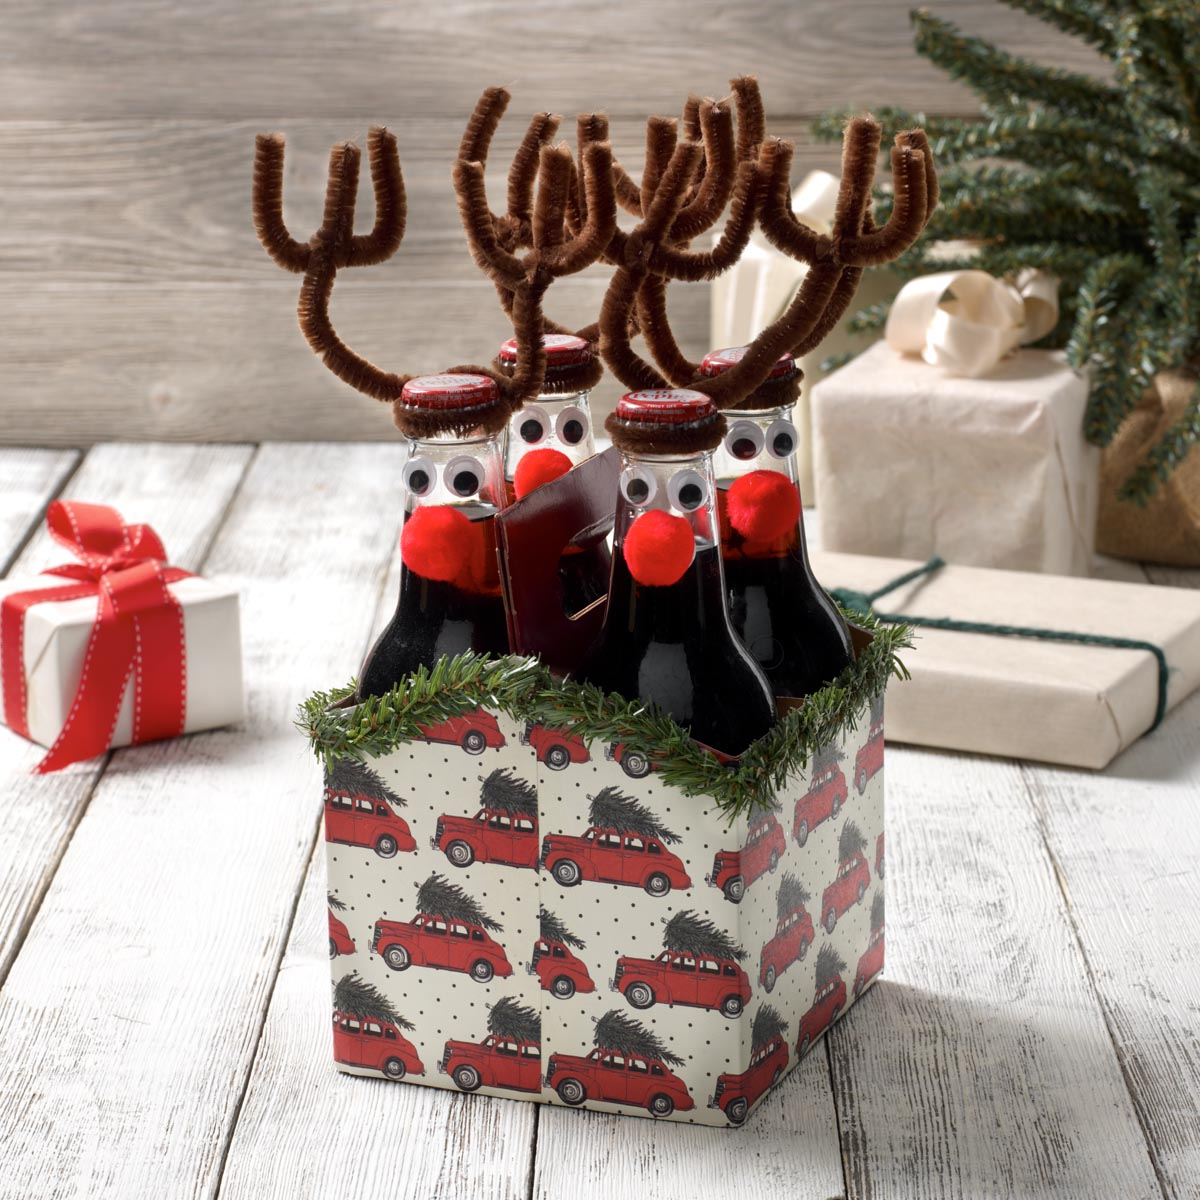 Reindeer Six-Pack of Bottles